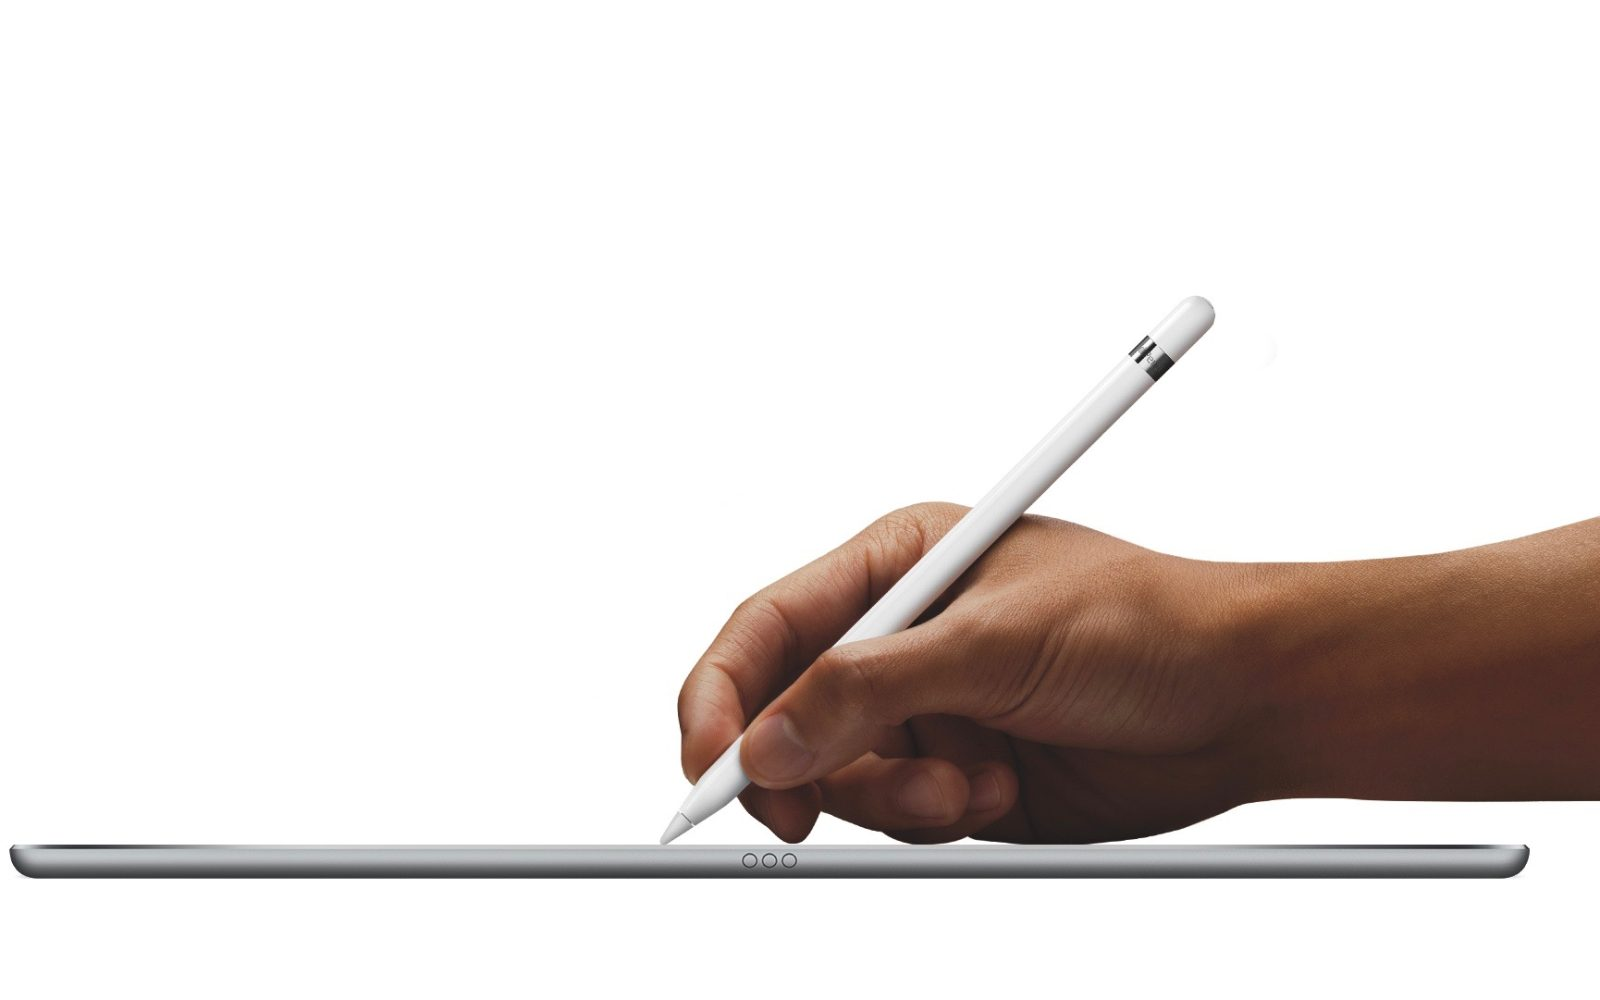 Best Ipad Pen For Writing